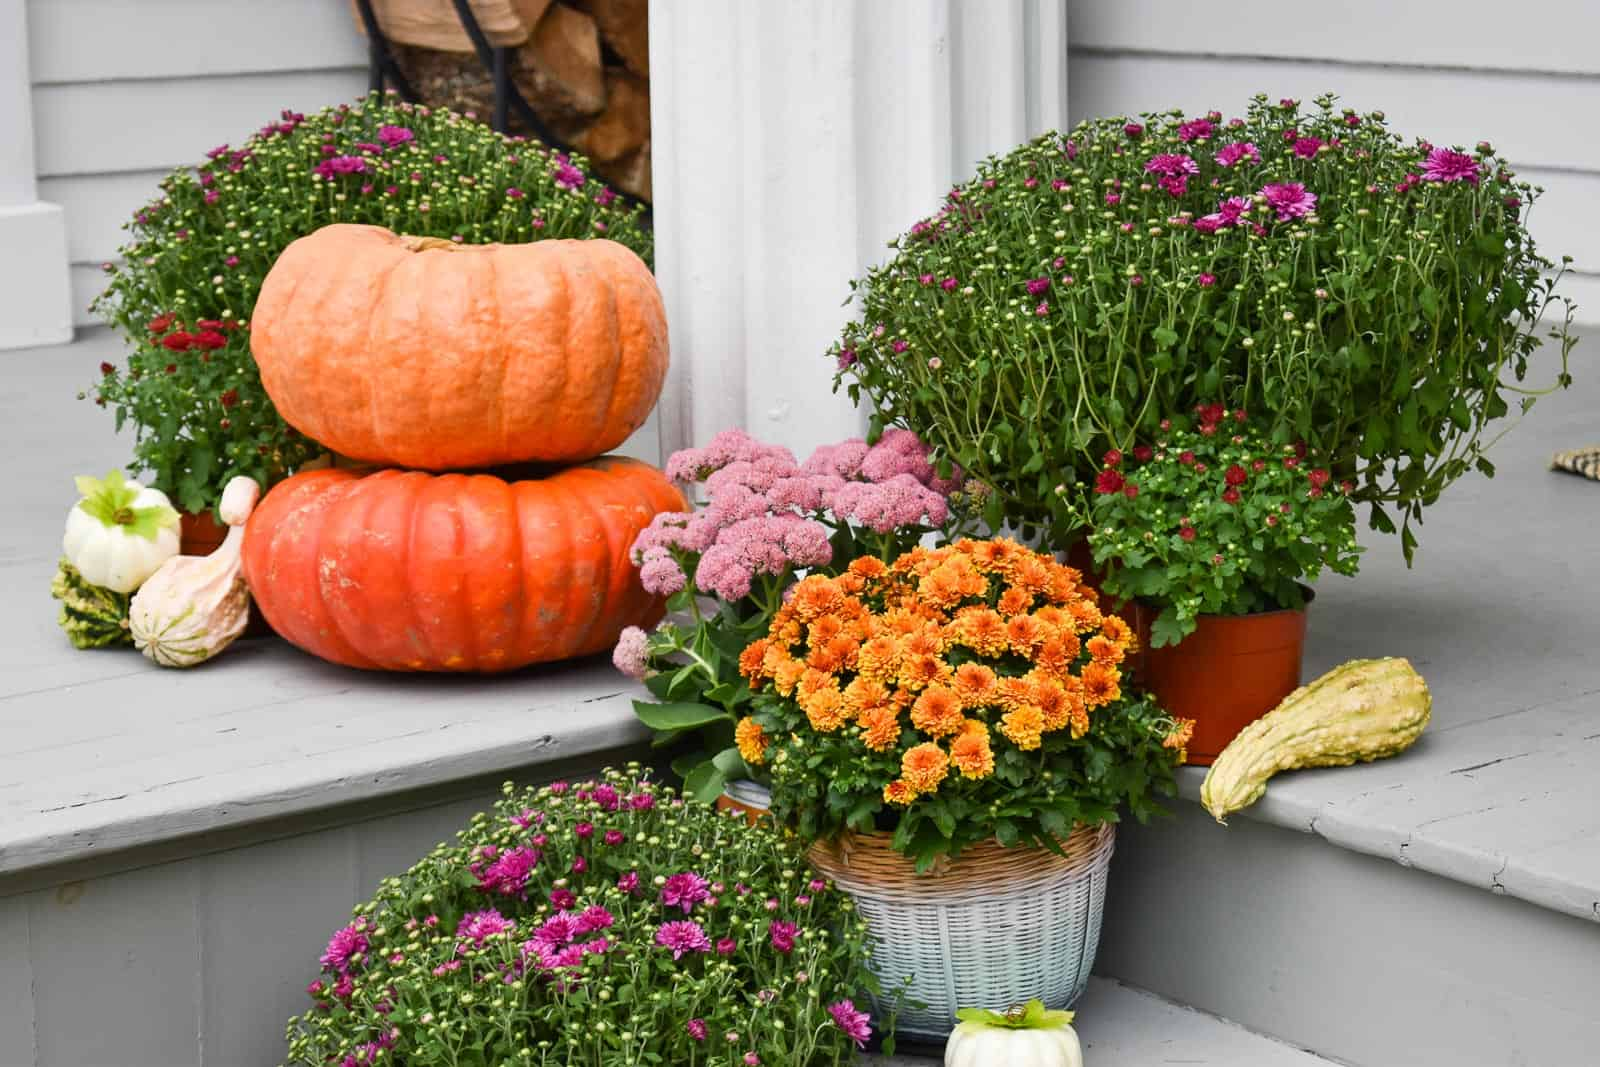 mums and pumpkins on our porch